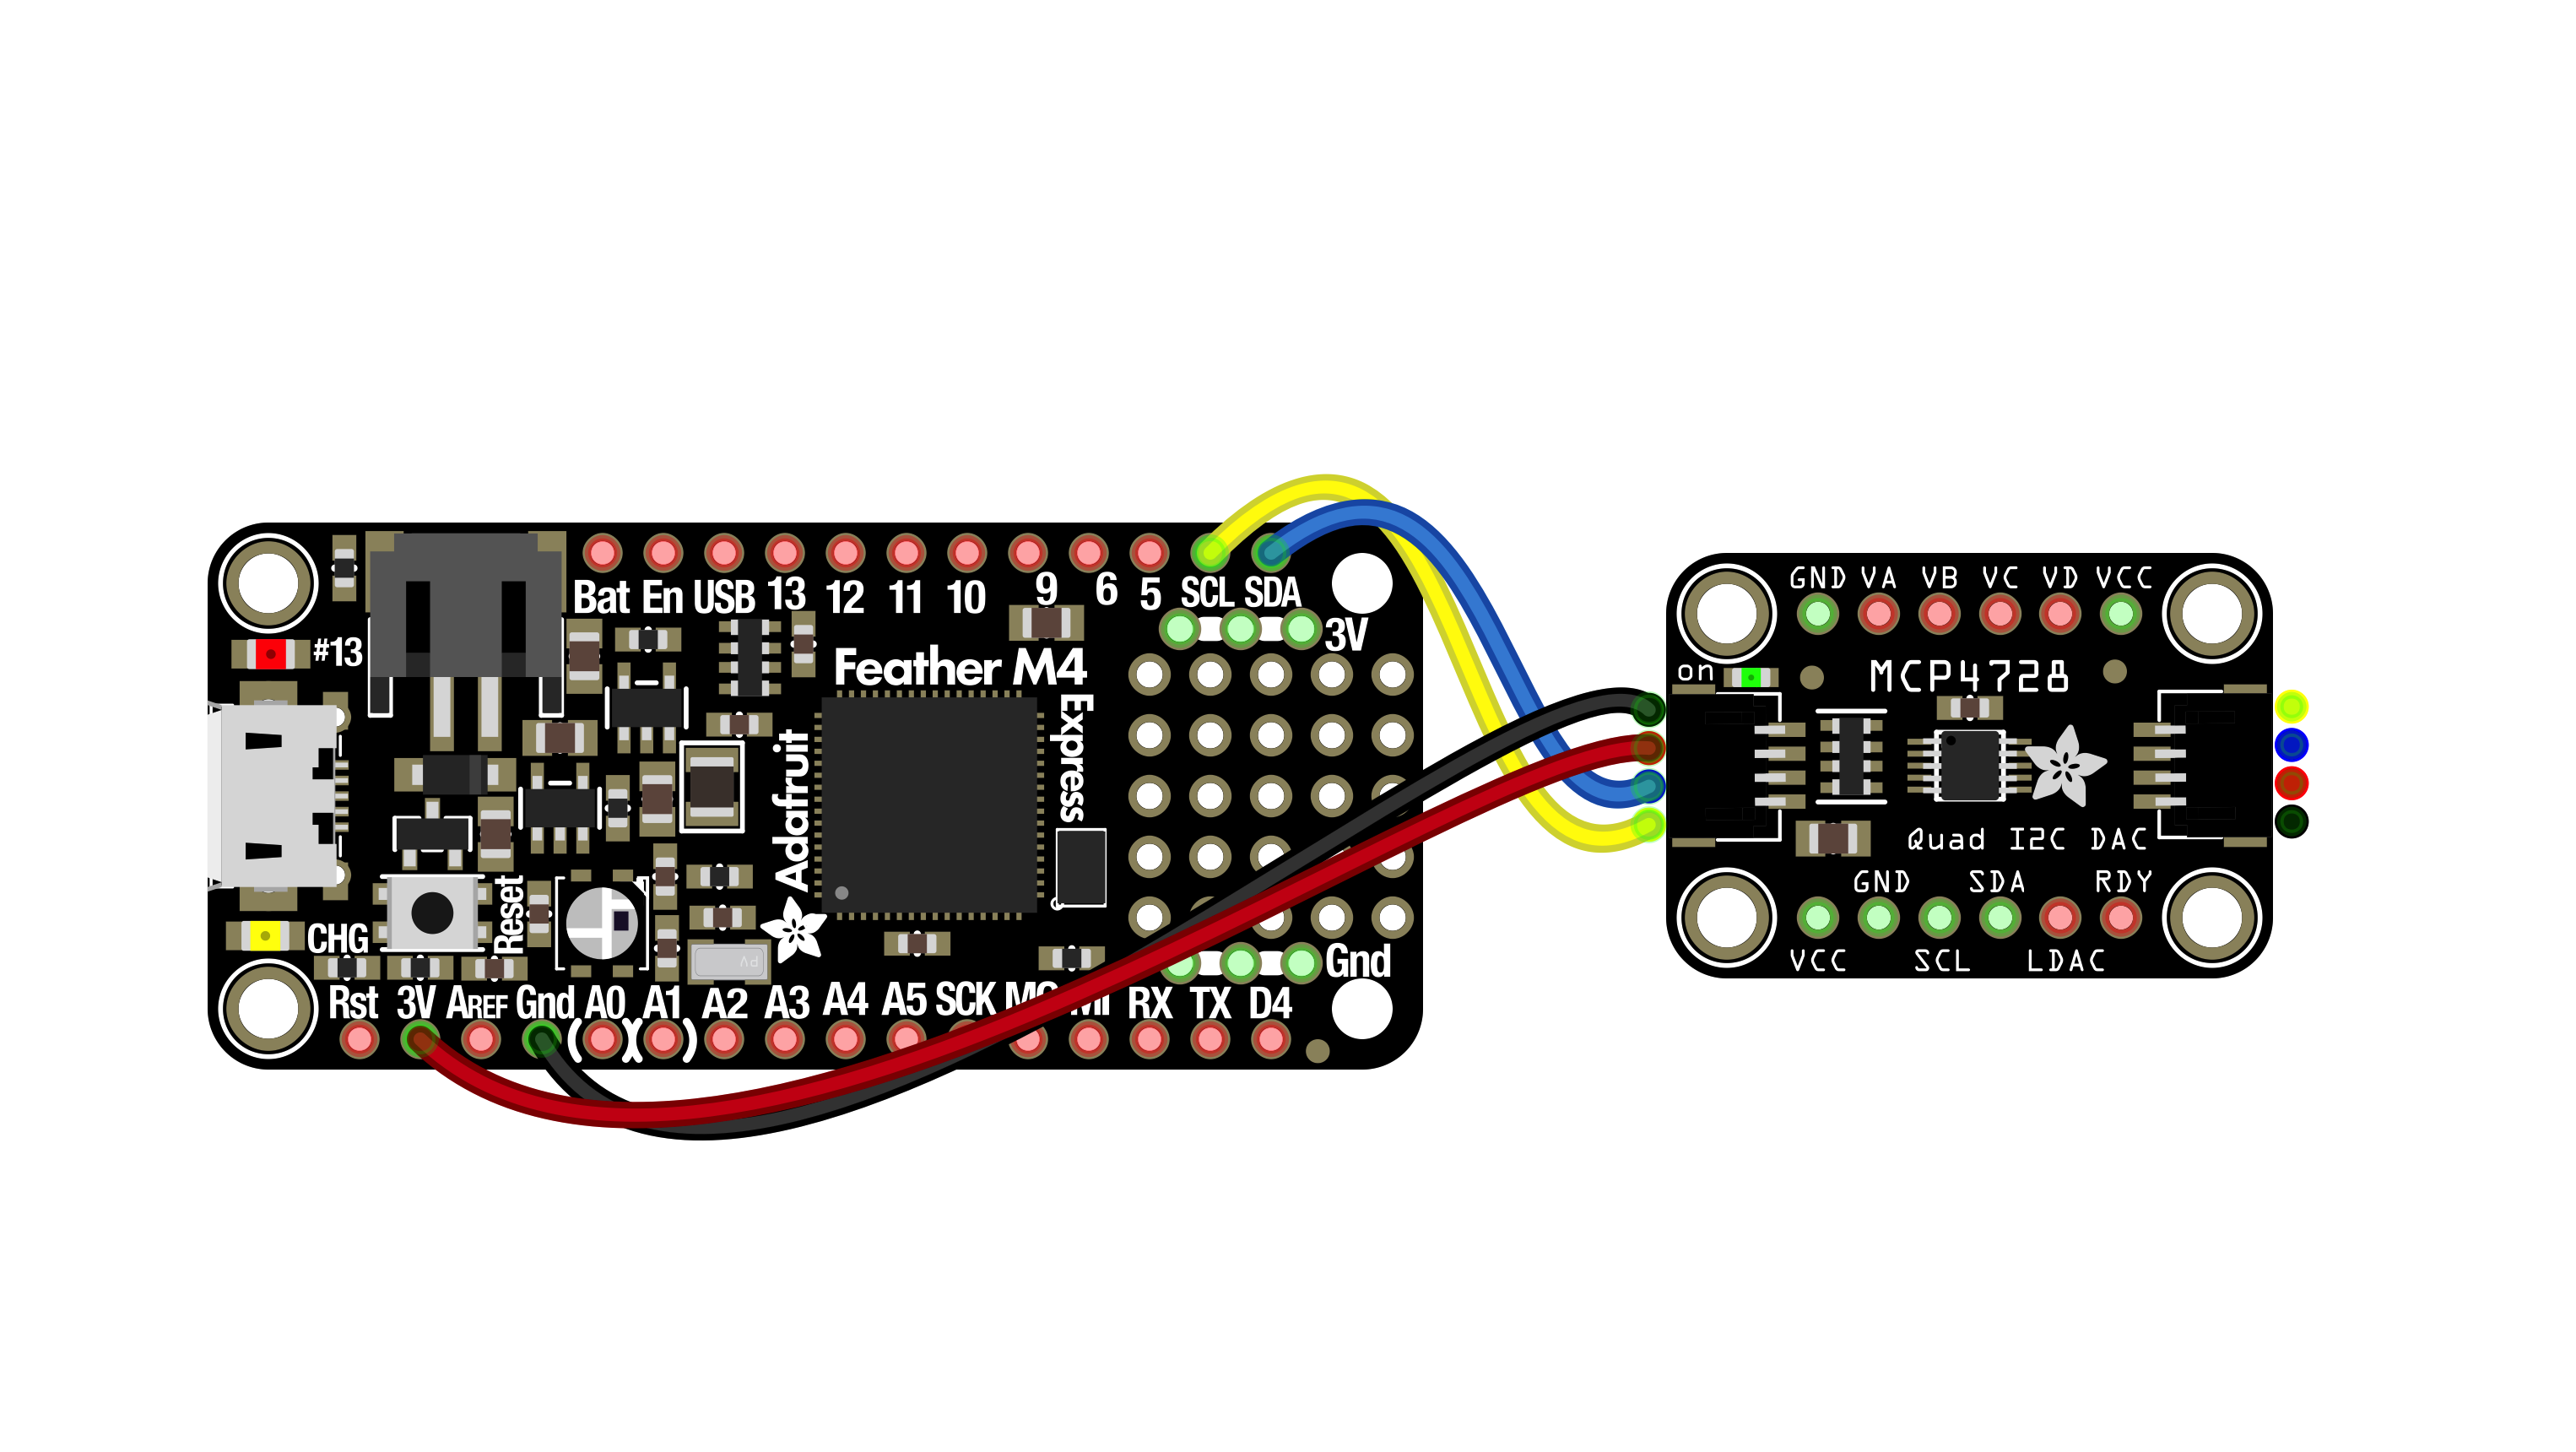 adafruit_products_cpy_wiring_qt.png